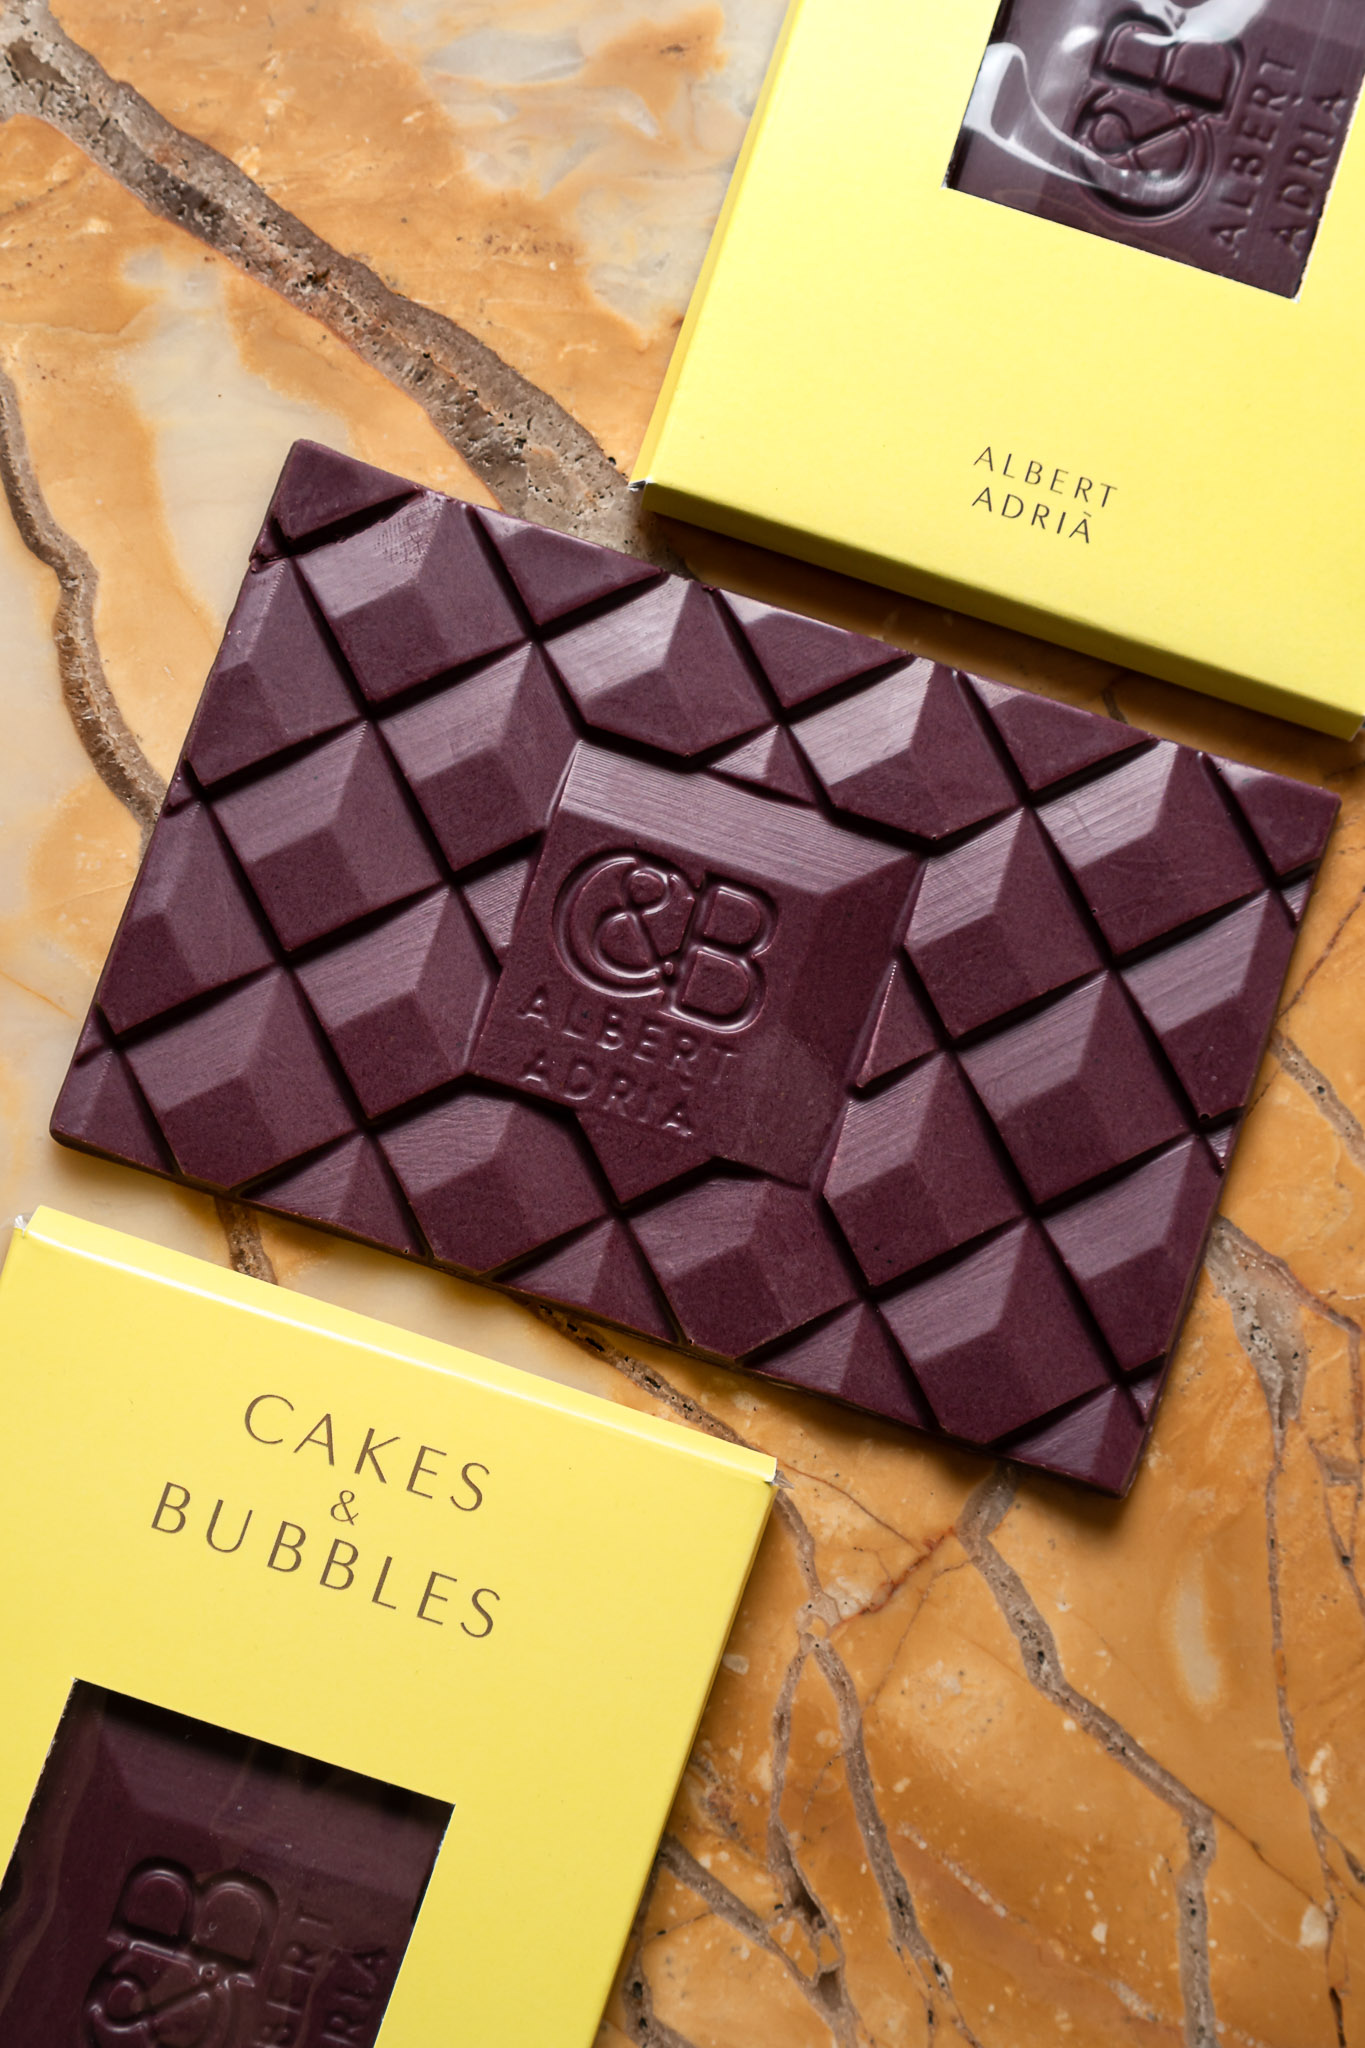 Chocolate Bar Cakes & Bubbles London